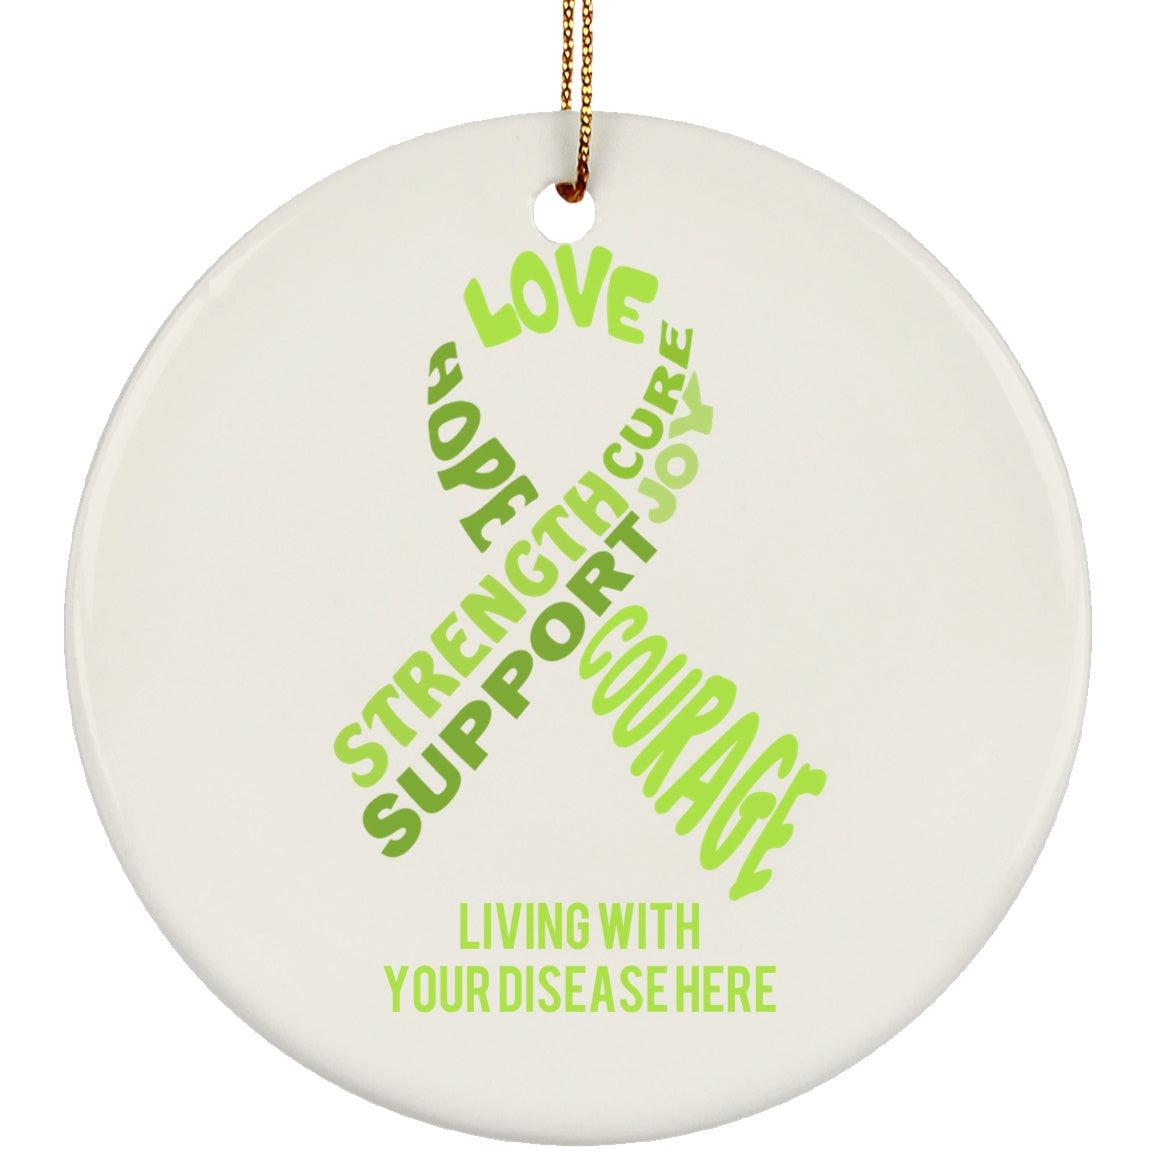 Customisable Lime Green Awareness Ribbon With Words Circle Ornament - The Unchargeables